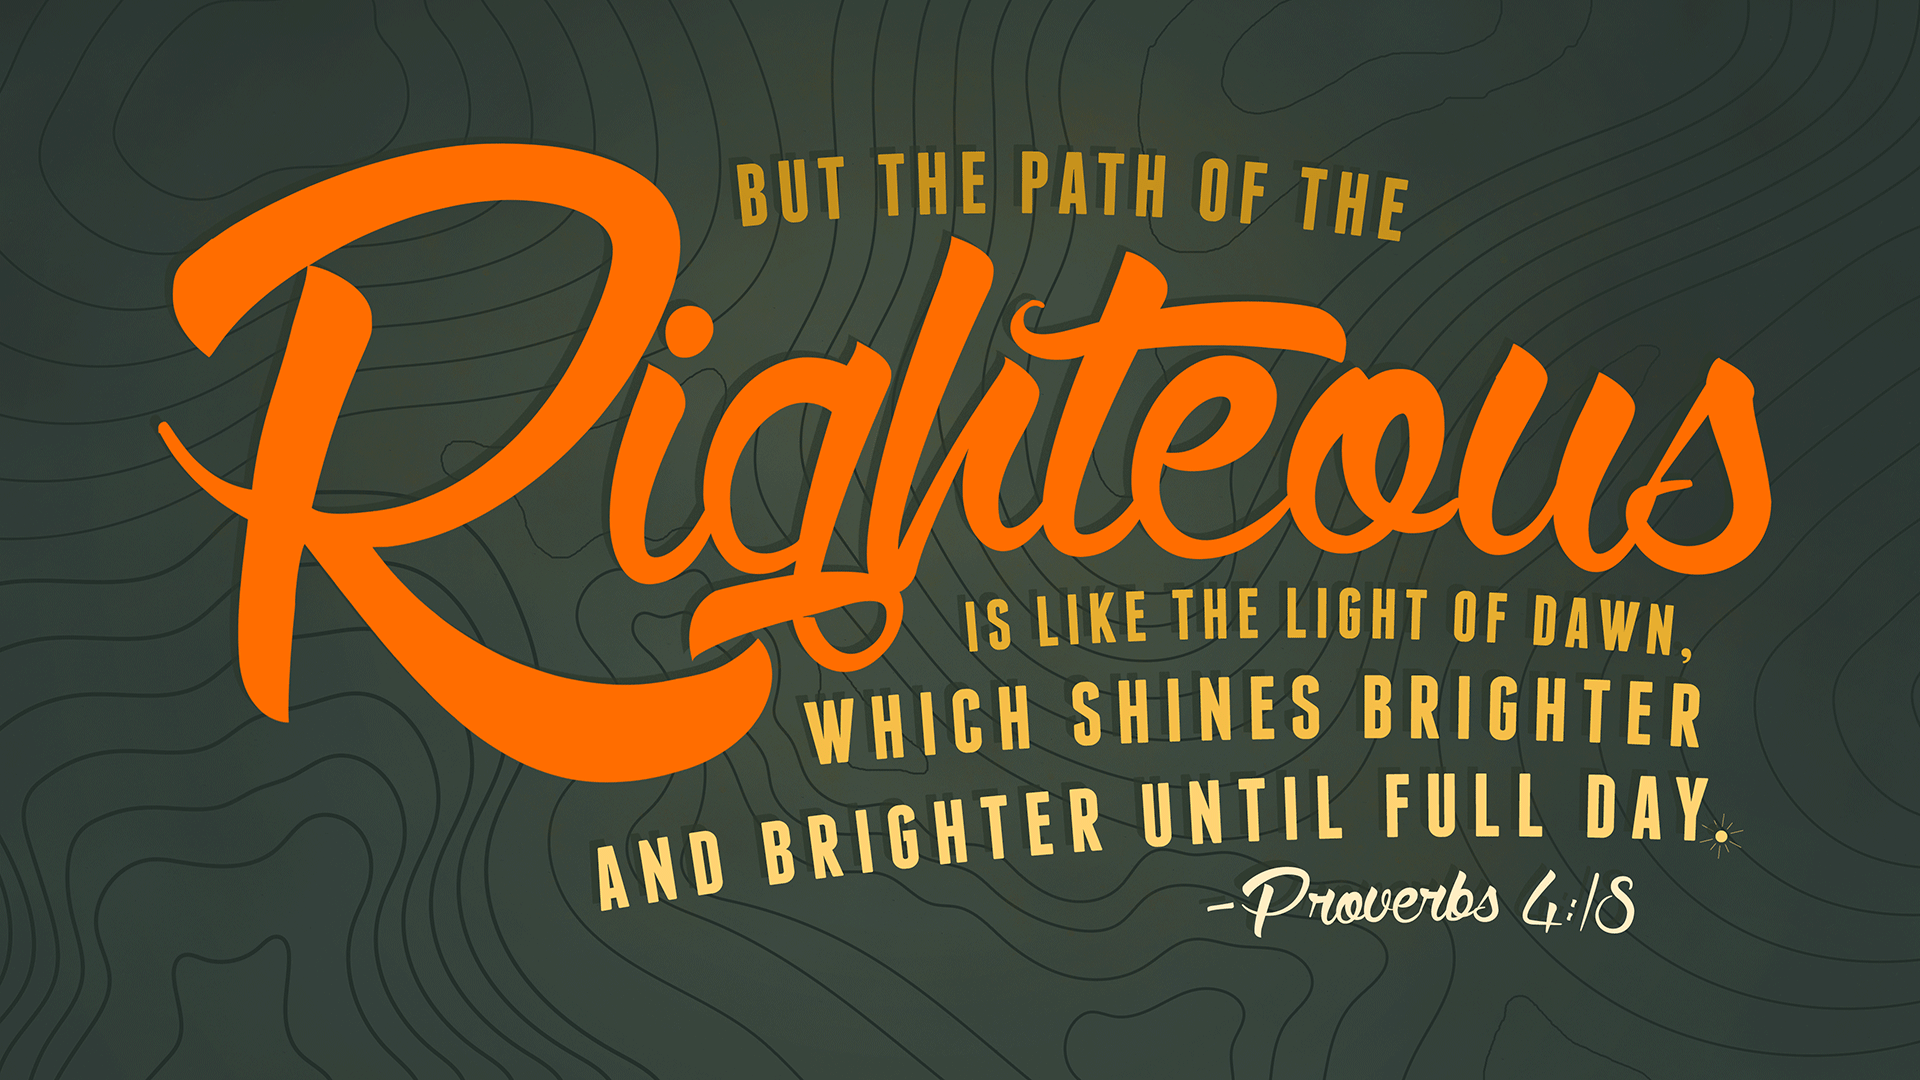 PROVERBS_4_18-1920x1080.png